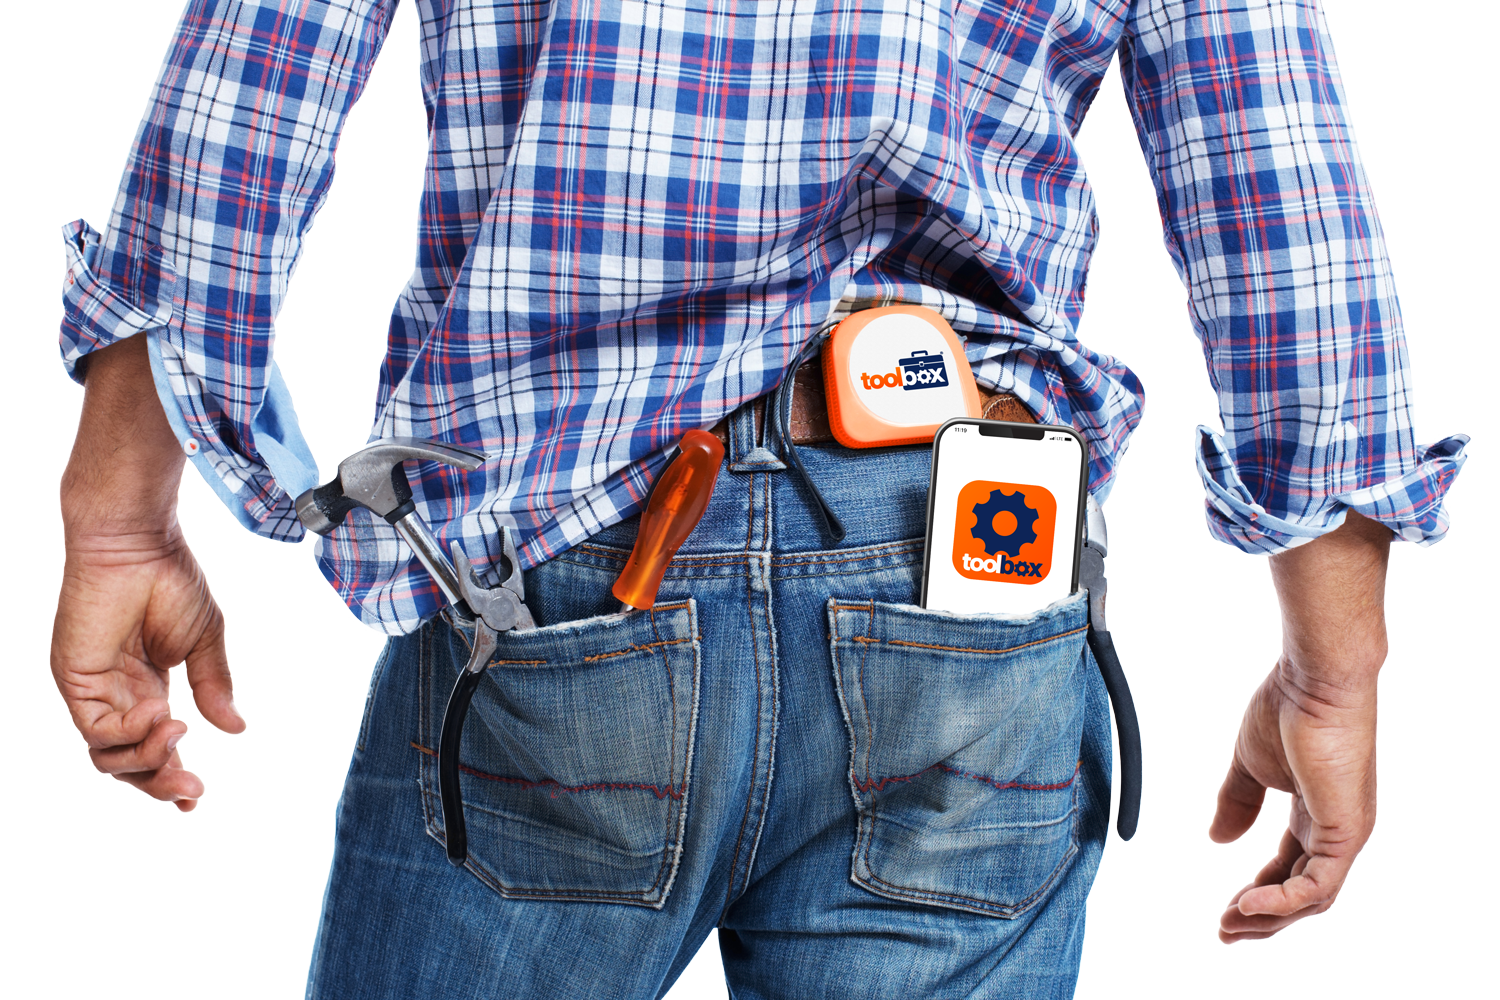 Run your business from your back pocket with toolboxpayment